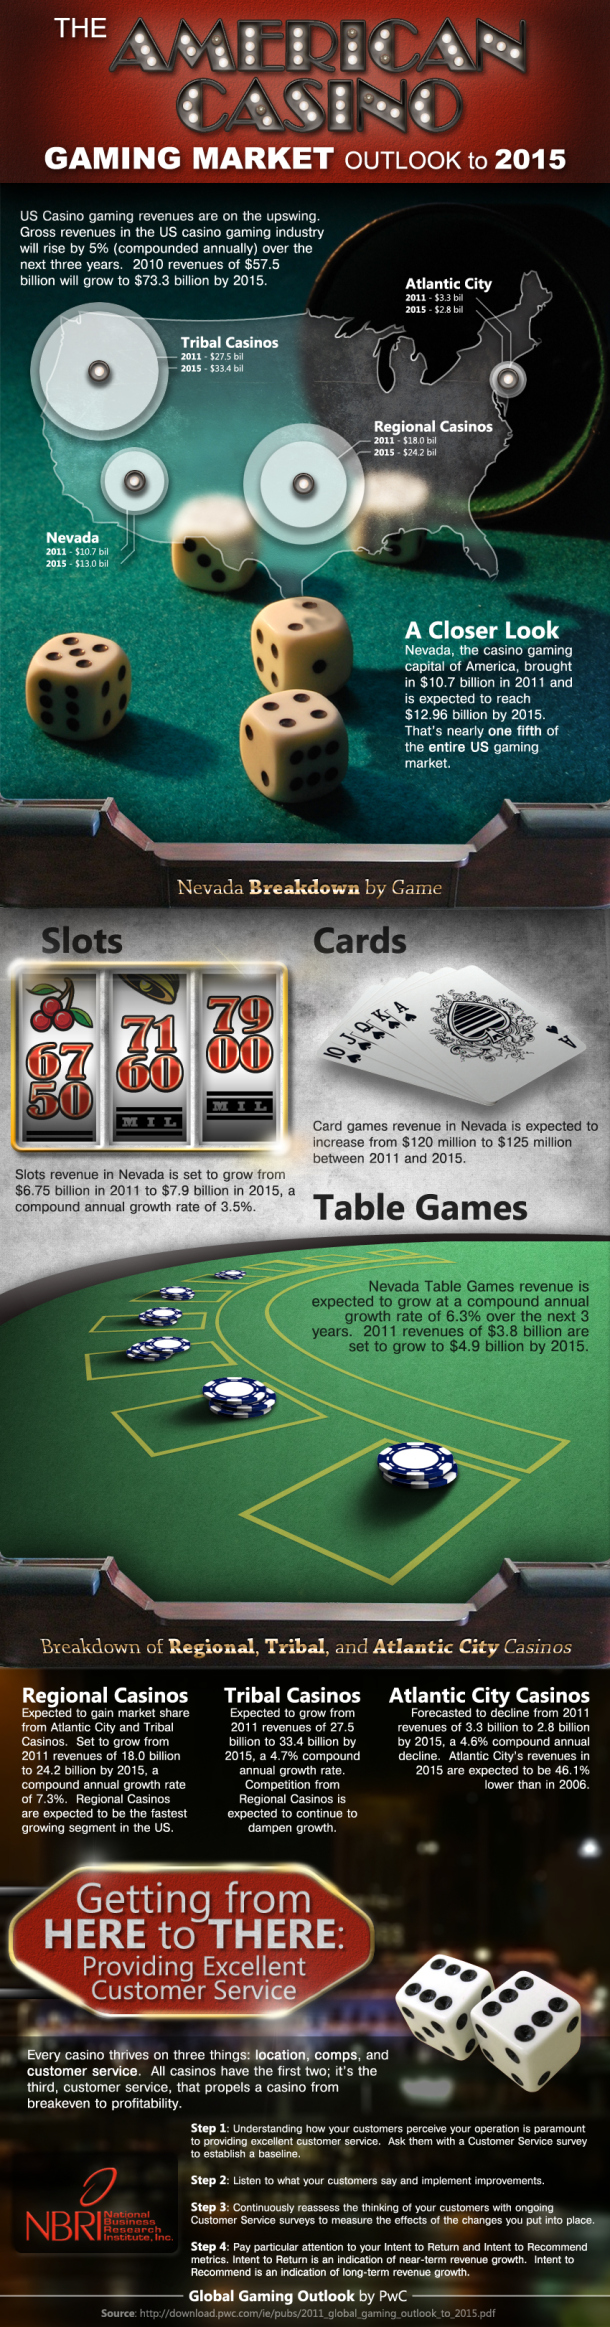 Outlook of American Casino market by 2015